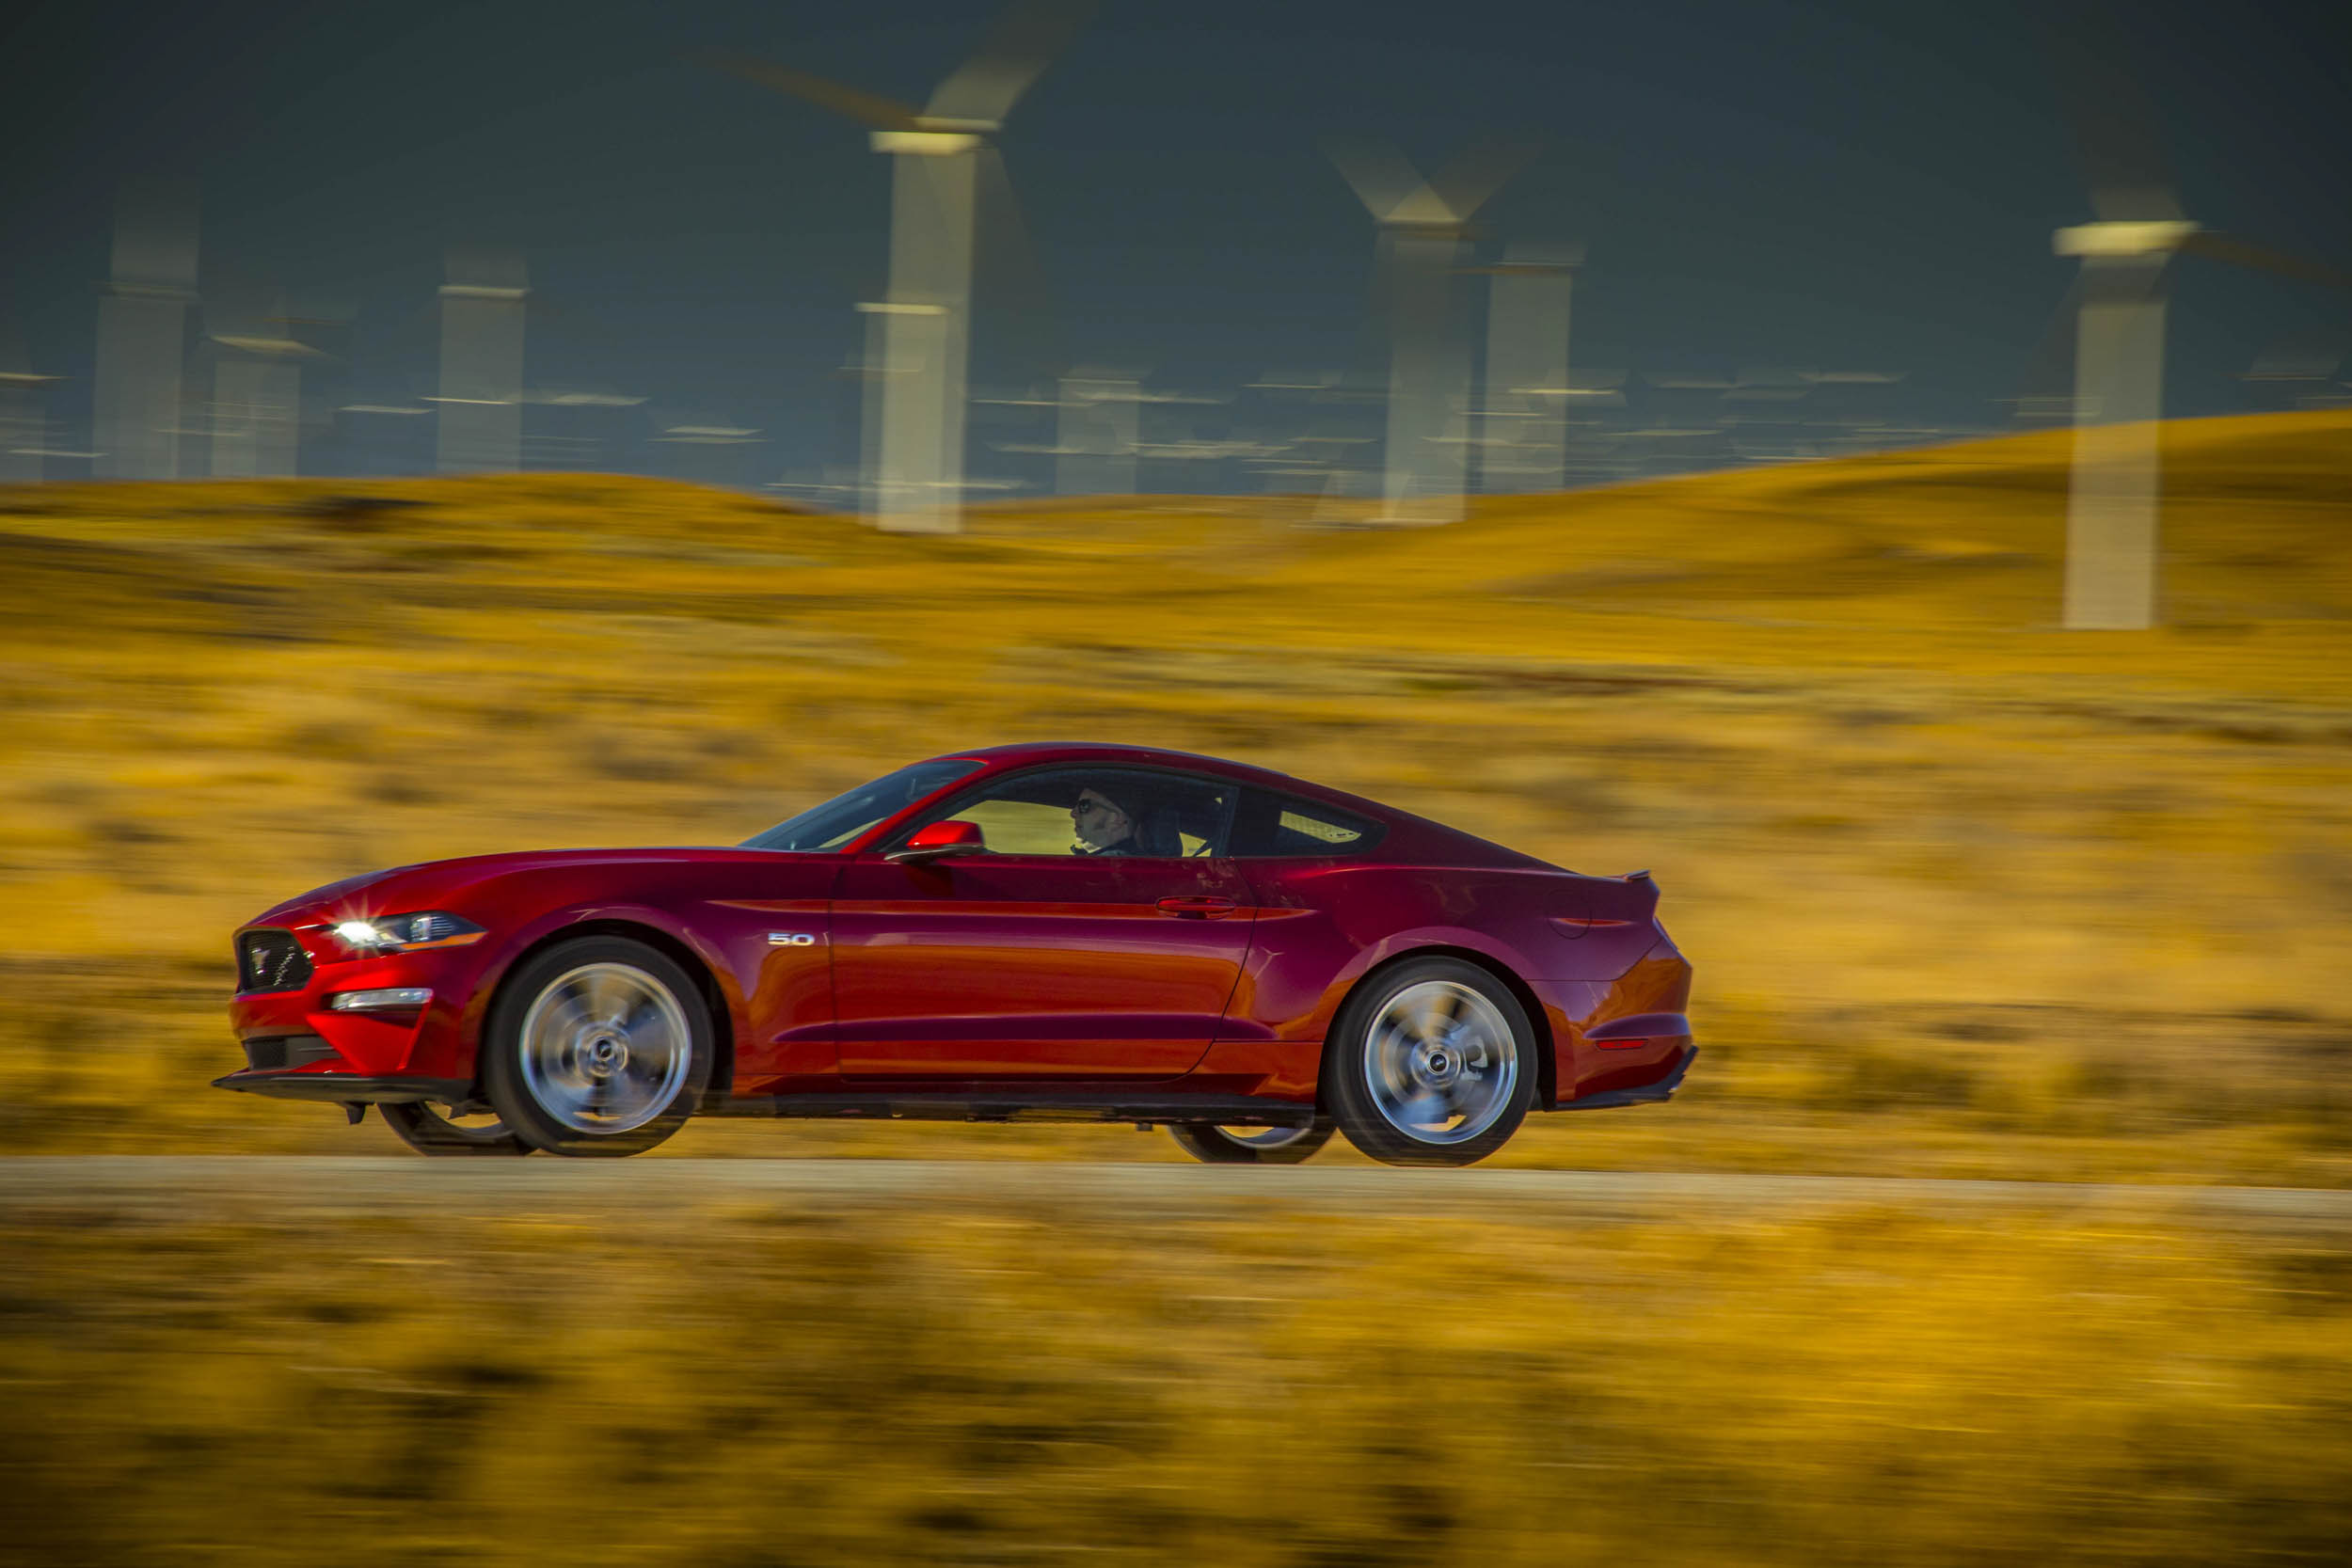 2018 Ford Mustang GT profile